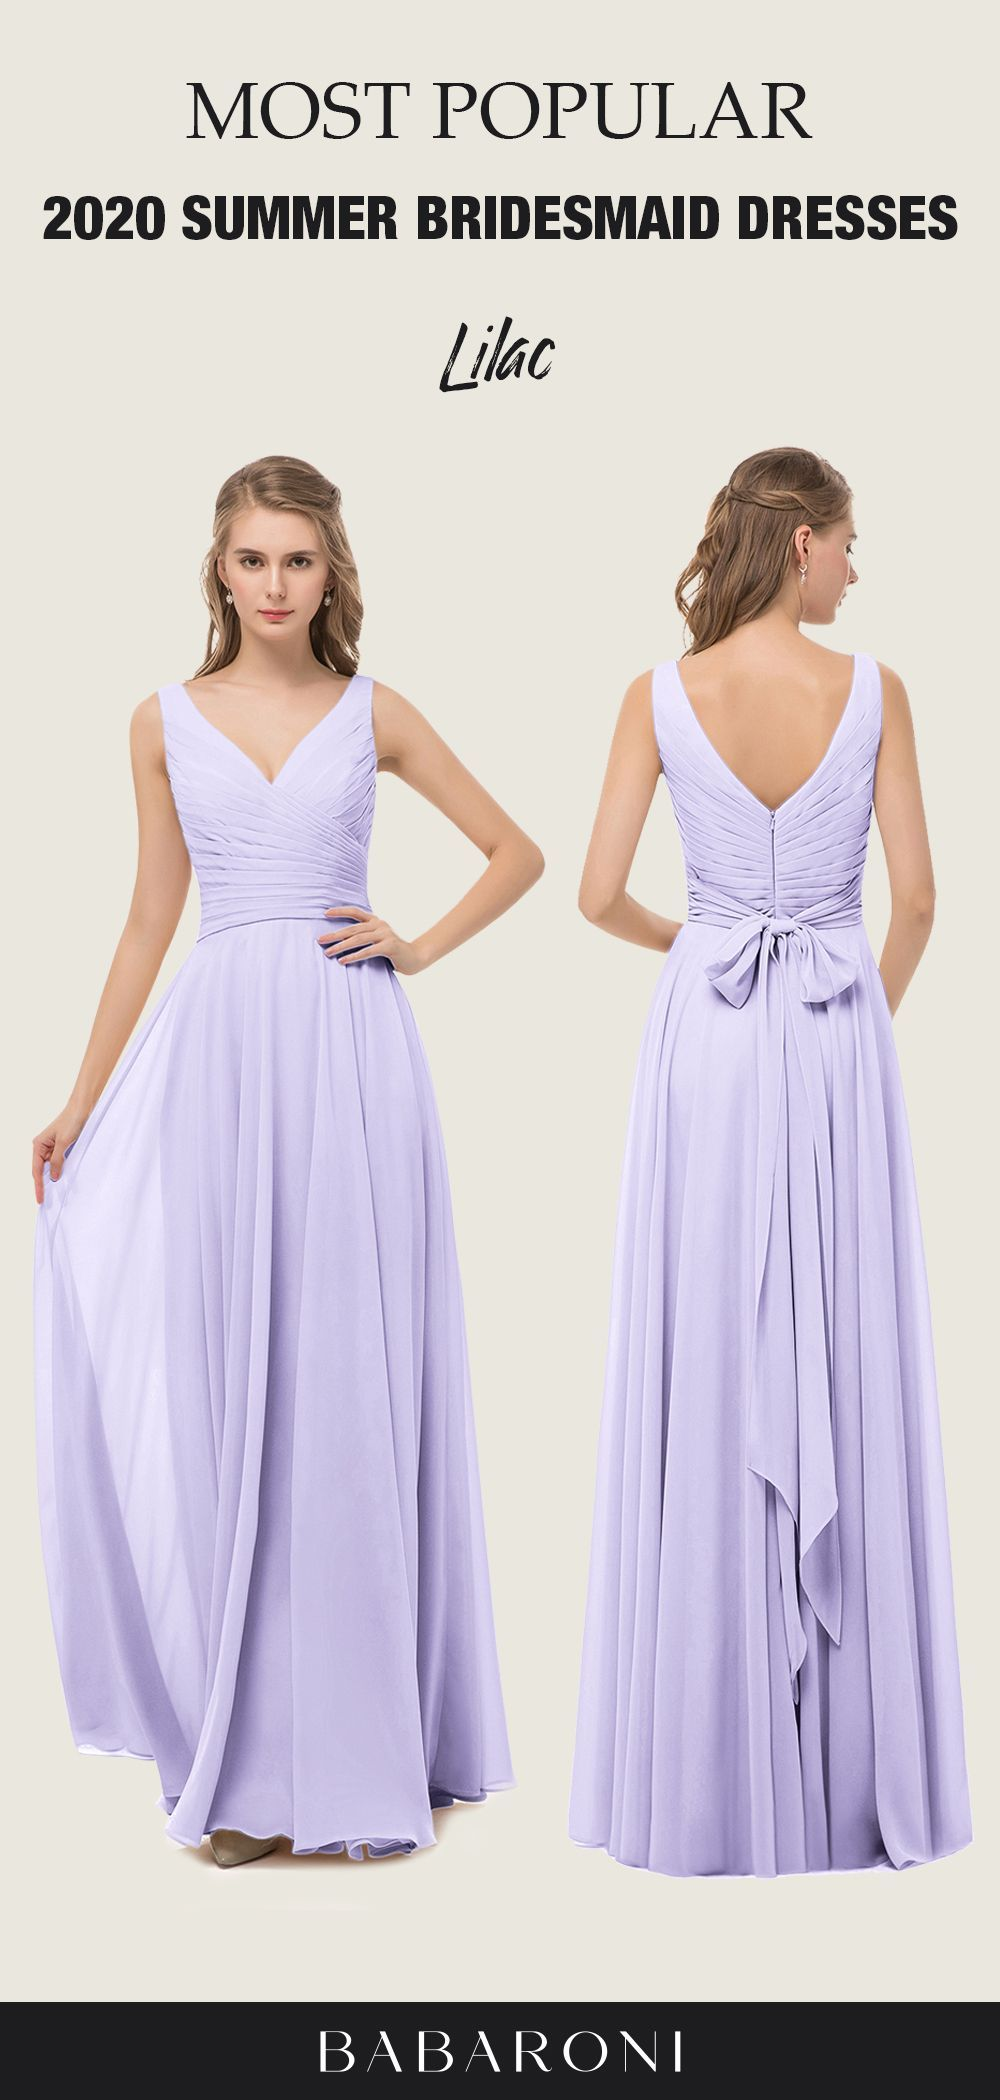 SKU: Cassiopeia Color: Lilac Price: $99.00 Size: All Sizes Available  Cassiopeia's modern crisscross, pleated front bodice combined with its chic illusion v-neckline make the bridesmaids look sexy,but the bowknot on the back makes the dress look more elegant.  #babaroni #bigsale #christmas #christmassale #christmasdeals #wedding #wedding #weddings #weddings  #weddingdress #weddingdresses #bridalgown #bridesmaid  #bridesmaiddress #bridesmaidgown #Romantic Lilac Color Classic V